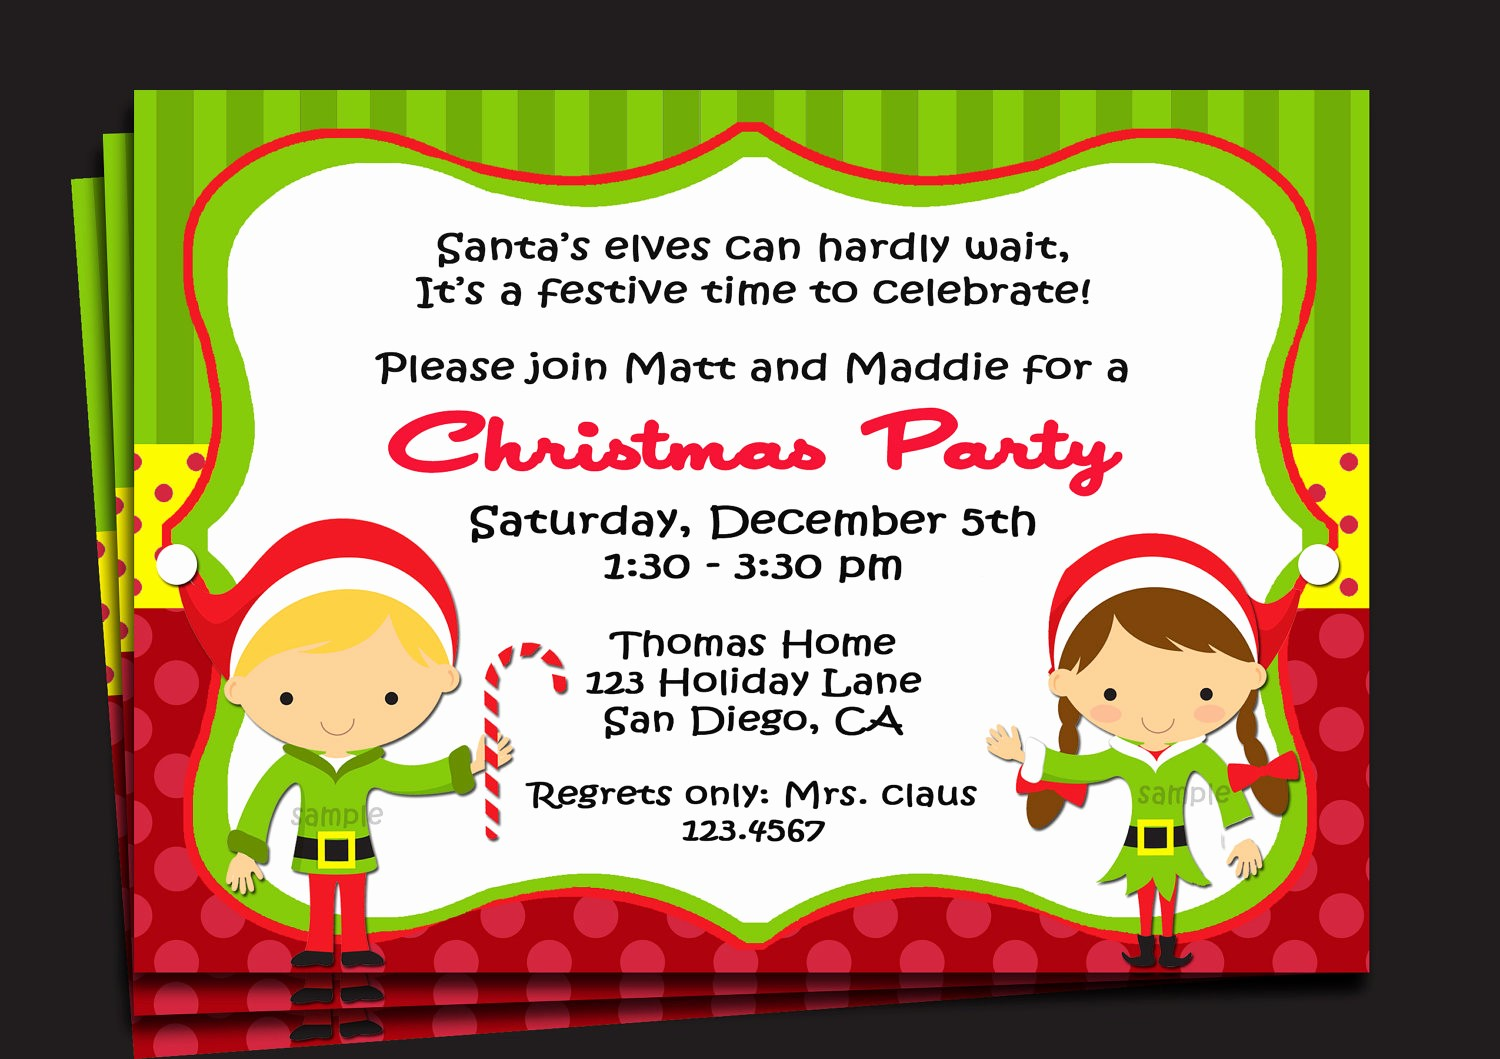 Free Online Christmas Party Invitations Fresh Christmas Party Invitation Printable or Printed with Free